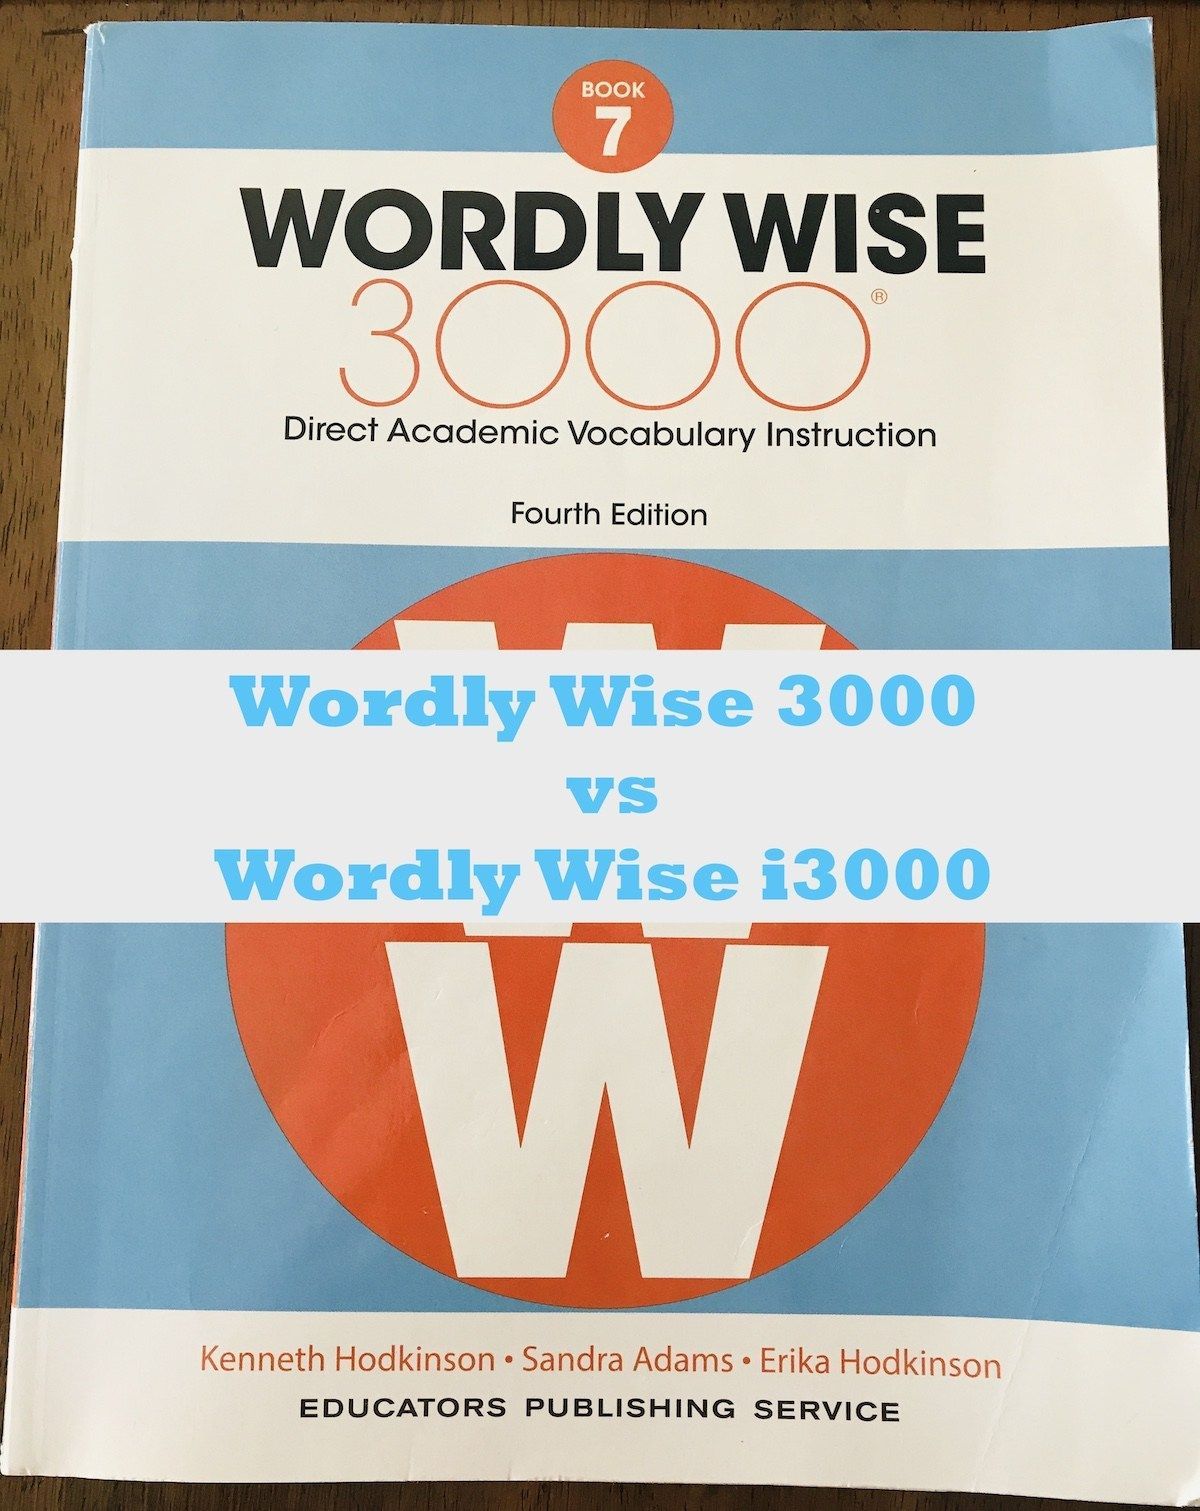 Wordly Wise Vs Wordly Wise I Review